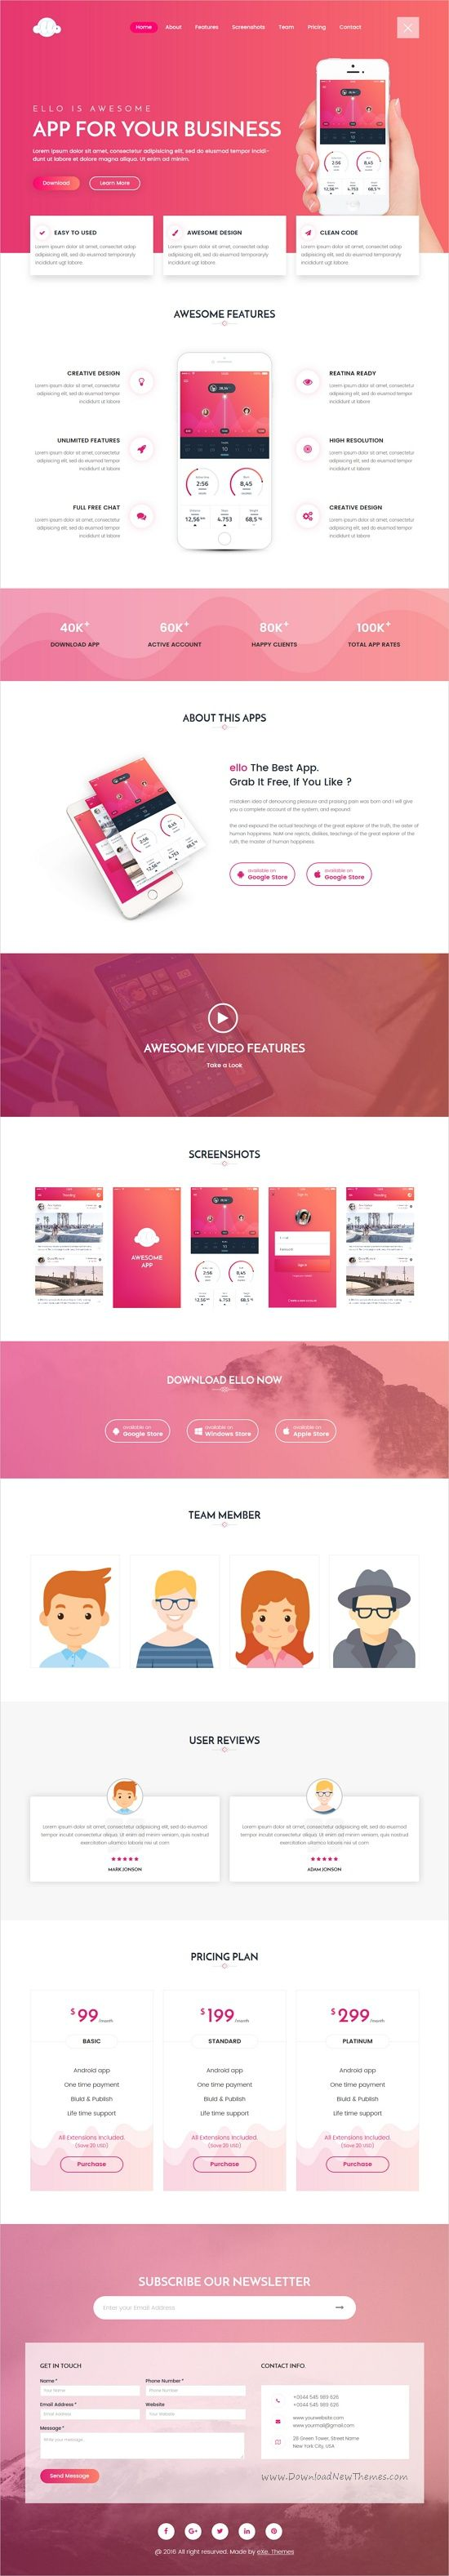 Ello is a modern, unique and clean design responsive #HTML #bootstrap template for amazing #landingpage marketing websites with 5+ unique homepage layouts download now➩ https://themeforest.net/item/ello-multipurpose-app-landing-html5-template/19326442?ref=Datasata